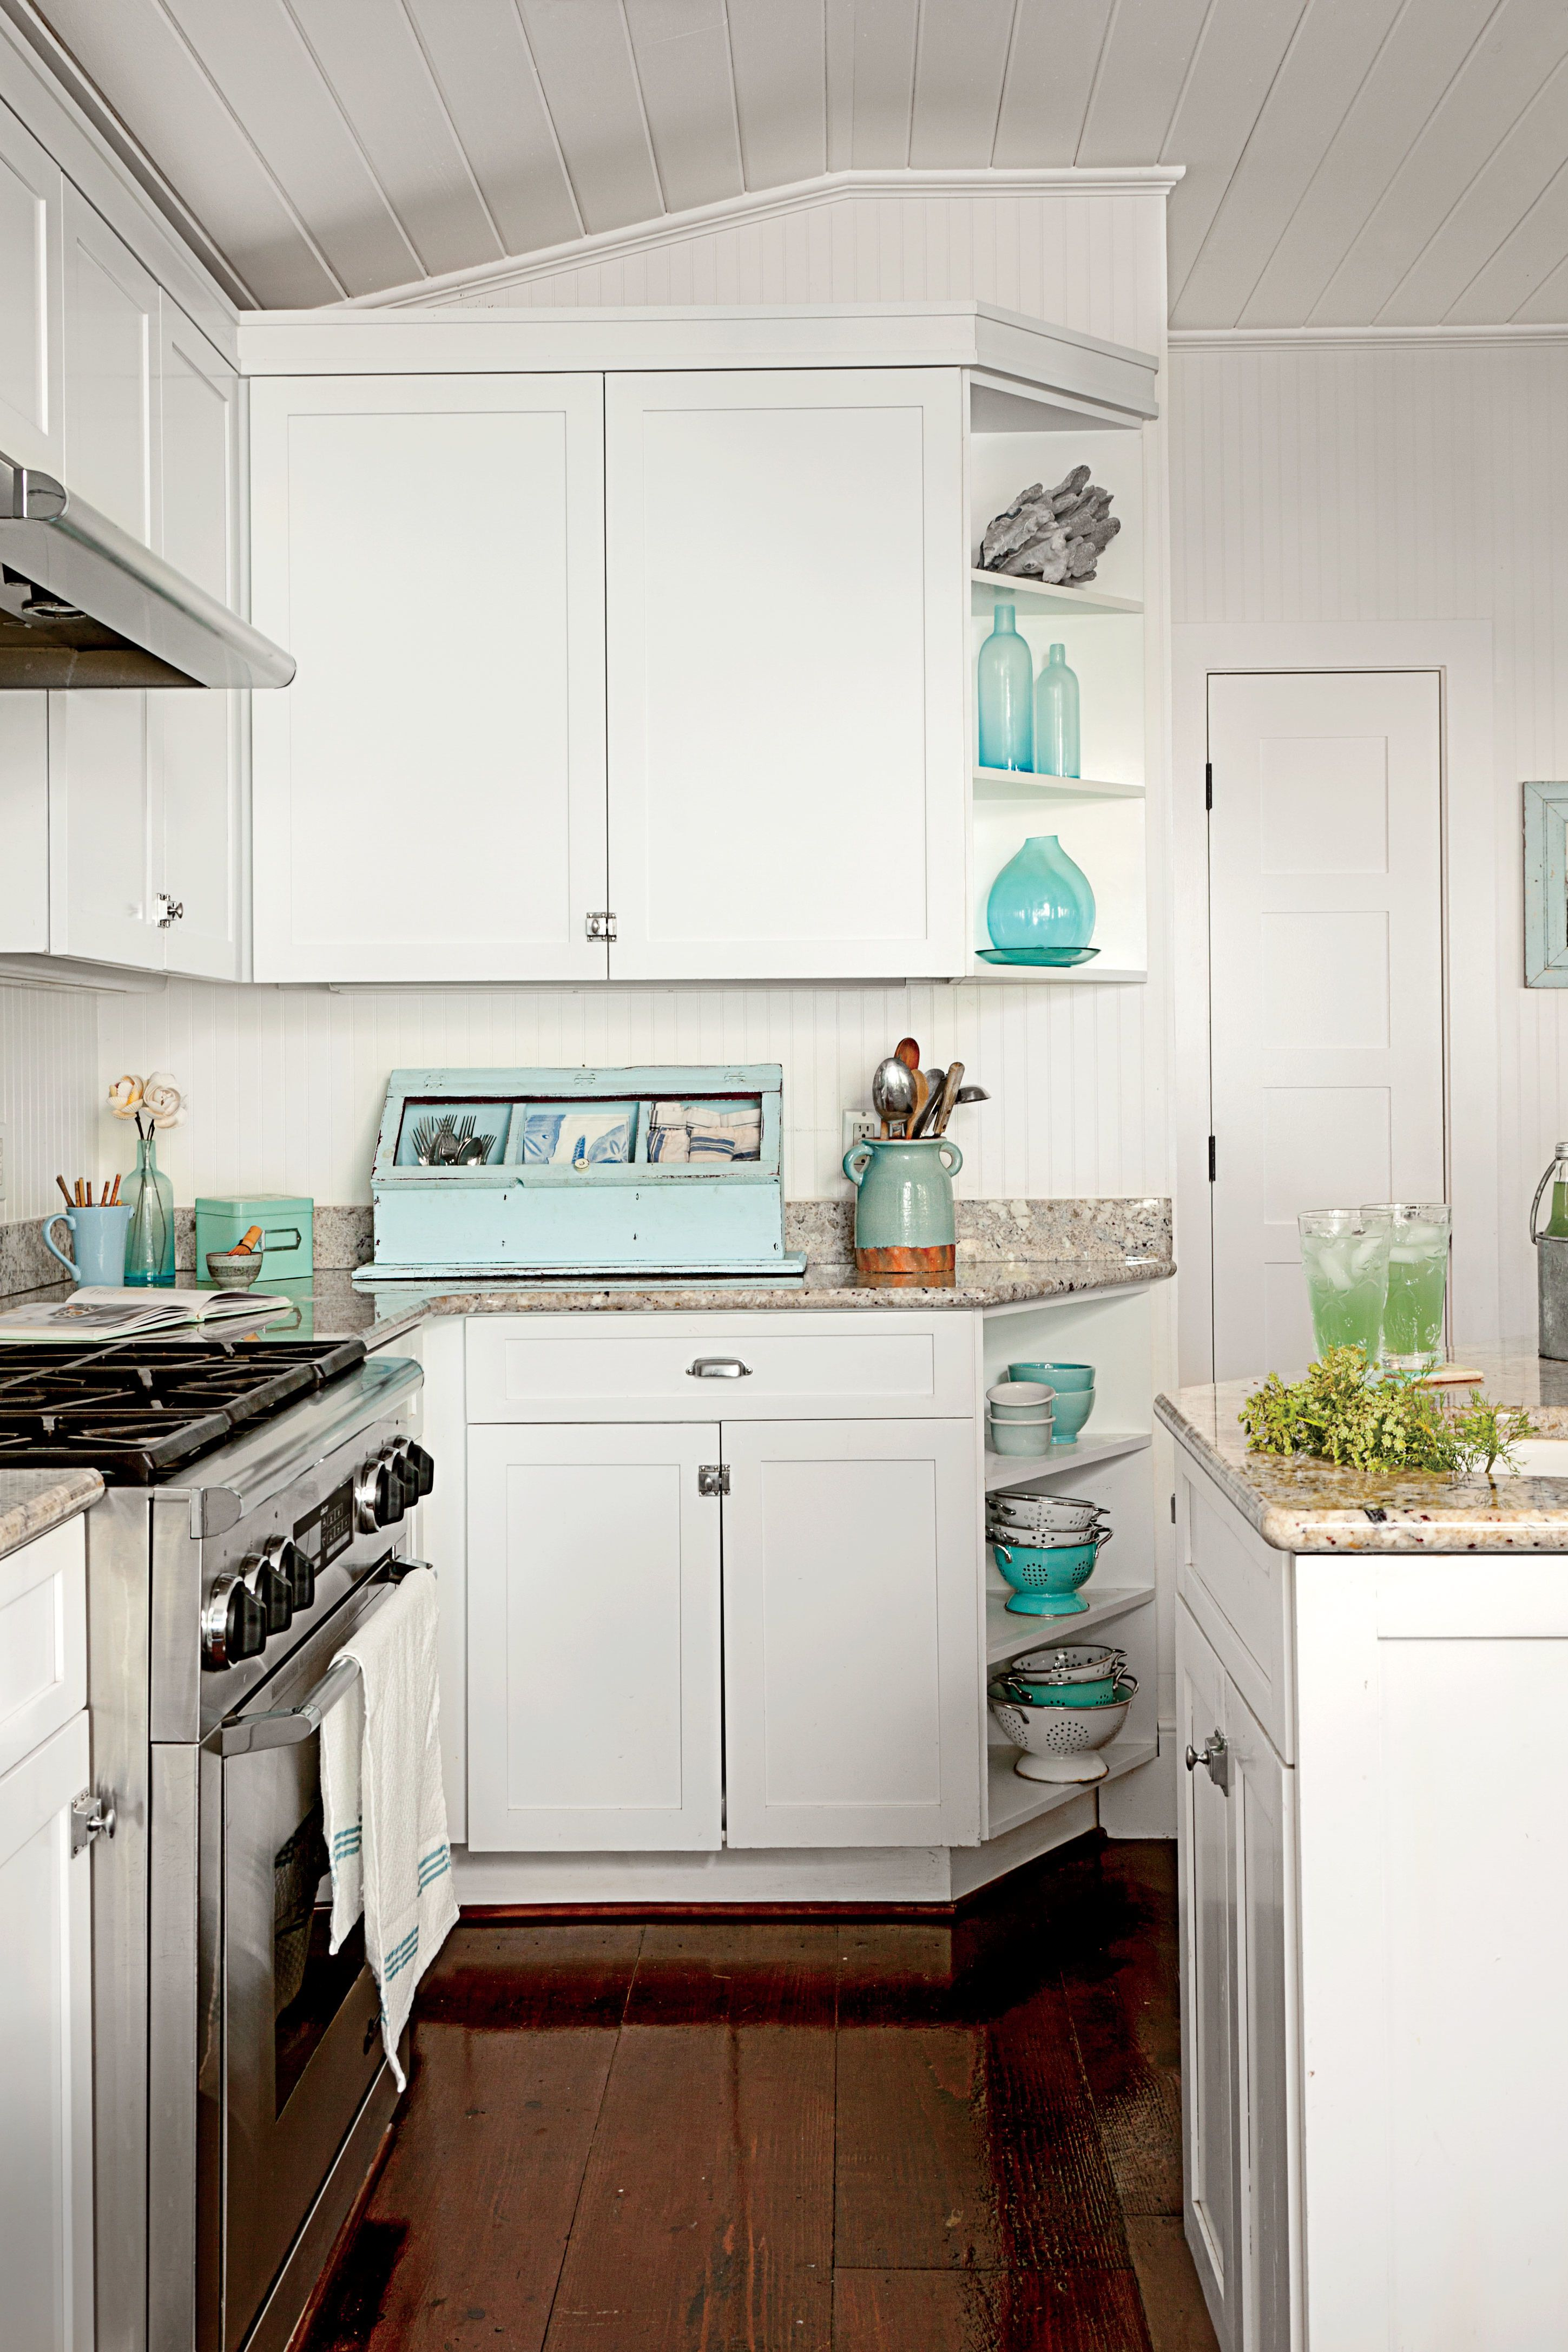 7 Steps to Casual Beach House Style | Kitchen cabinet ...